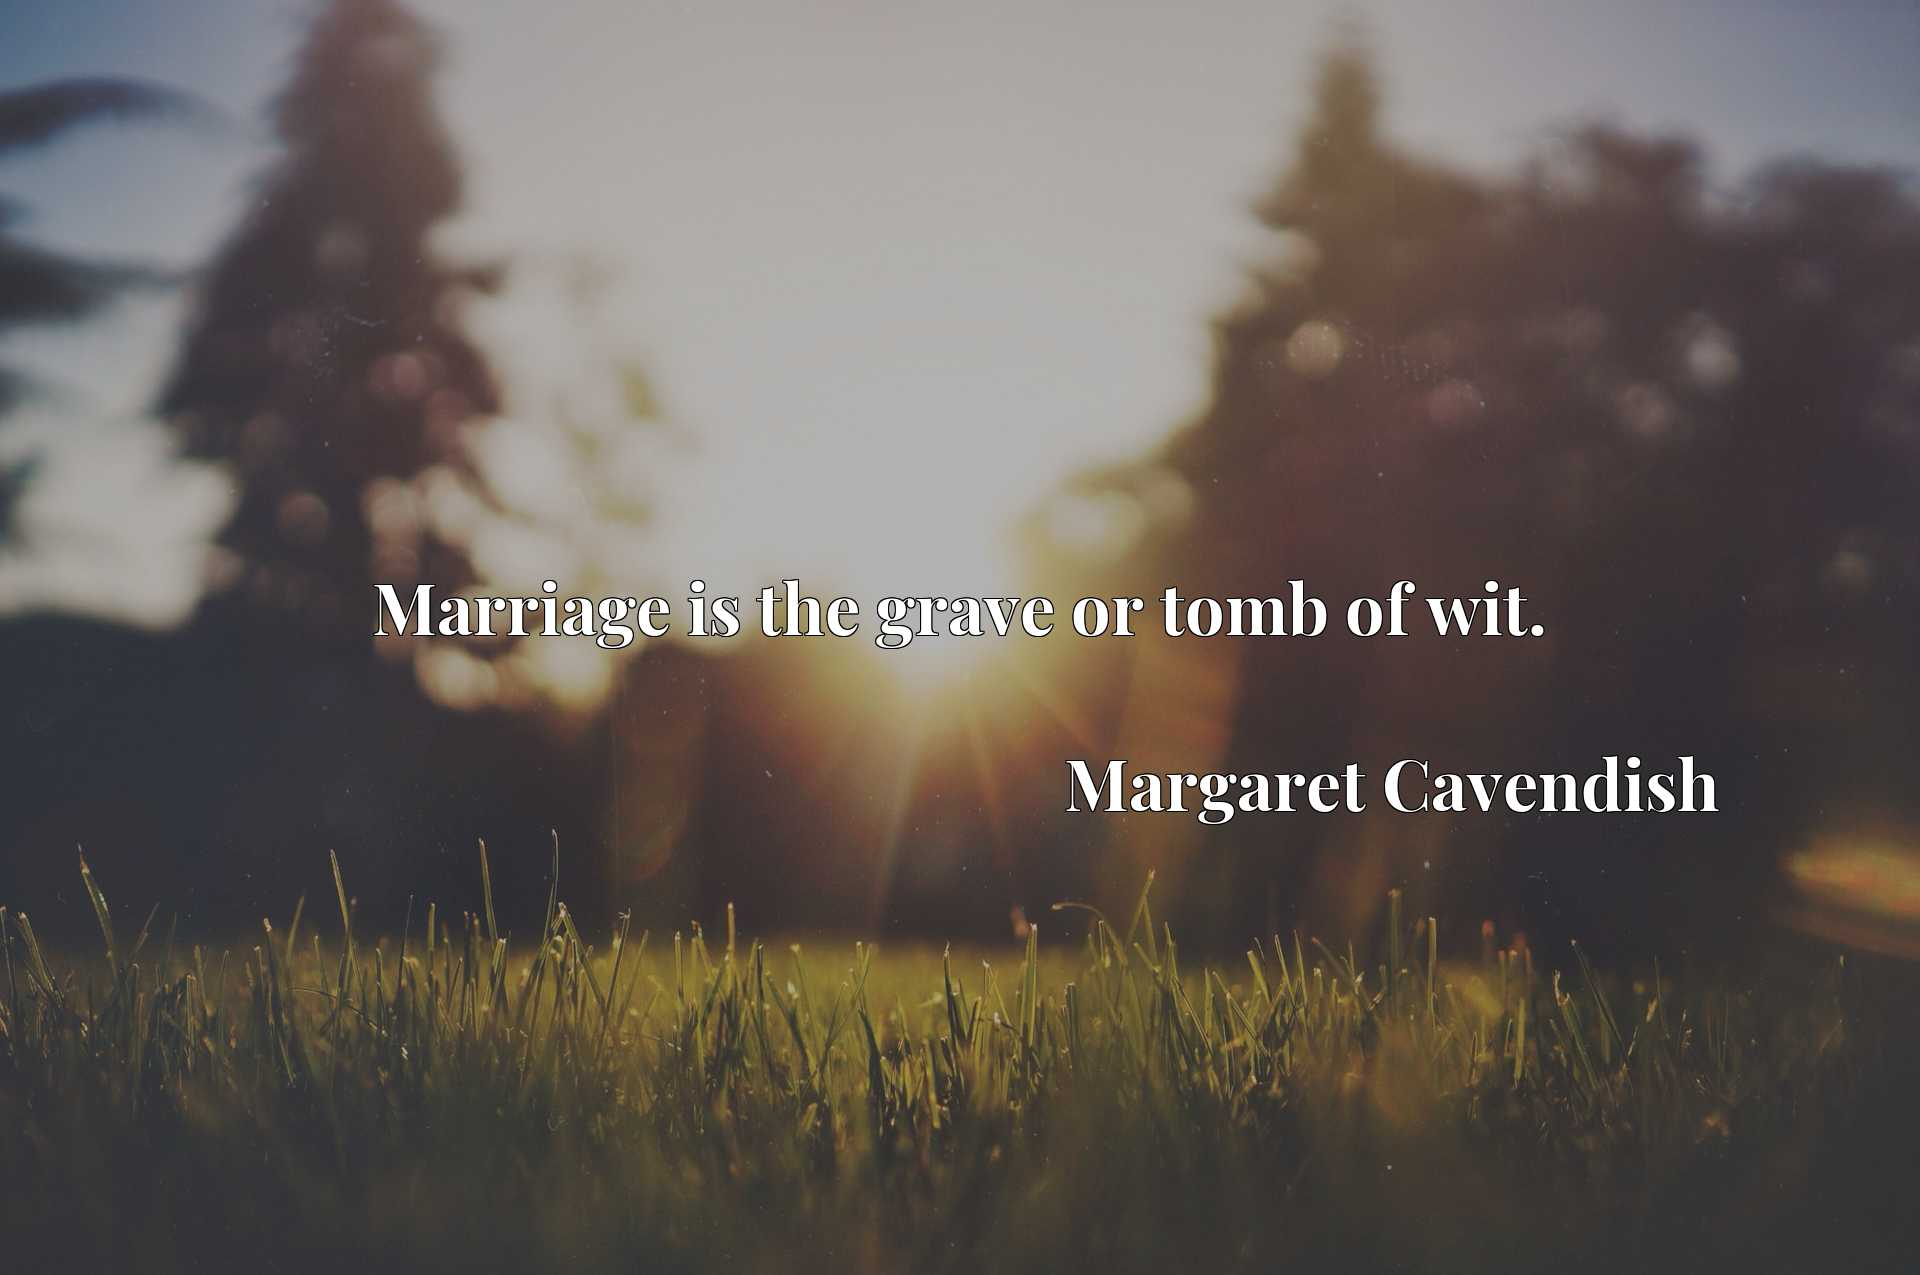 Quote Picture :Marriage is the grave or tomb of wit.